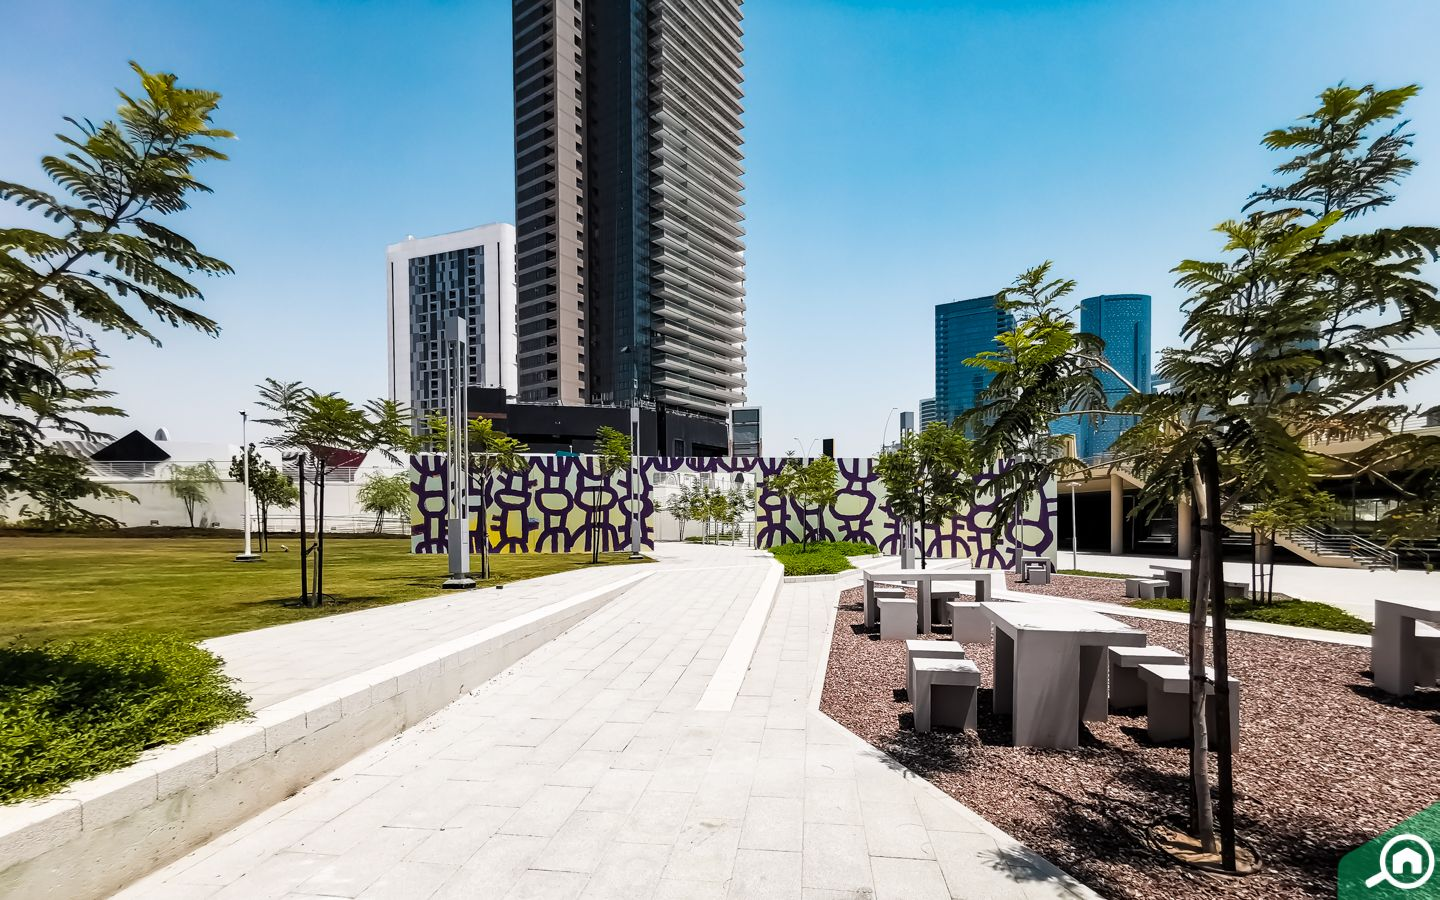 Reem Central Park for fun things to do in Al Reem Island